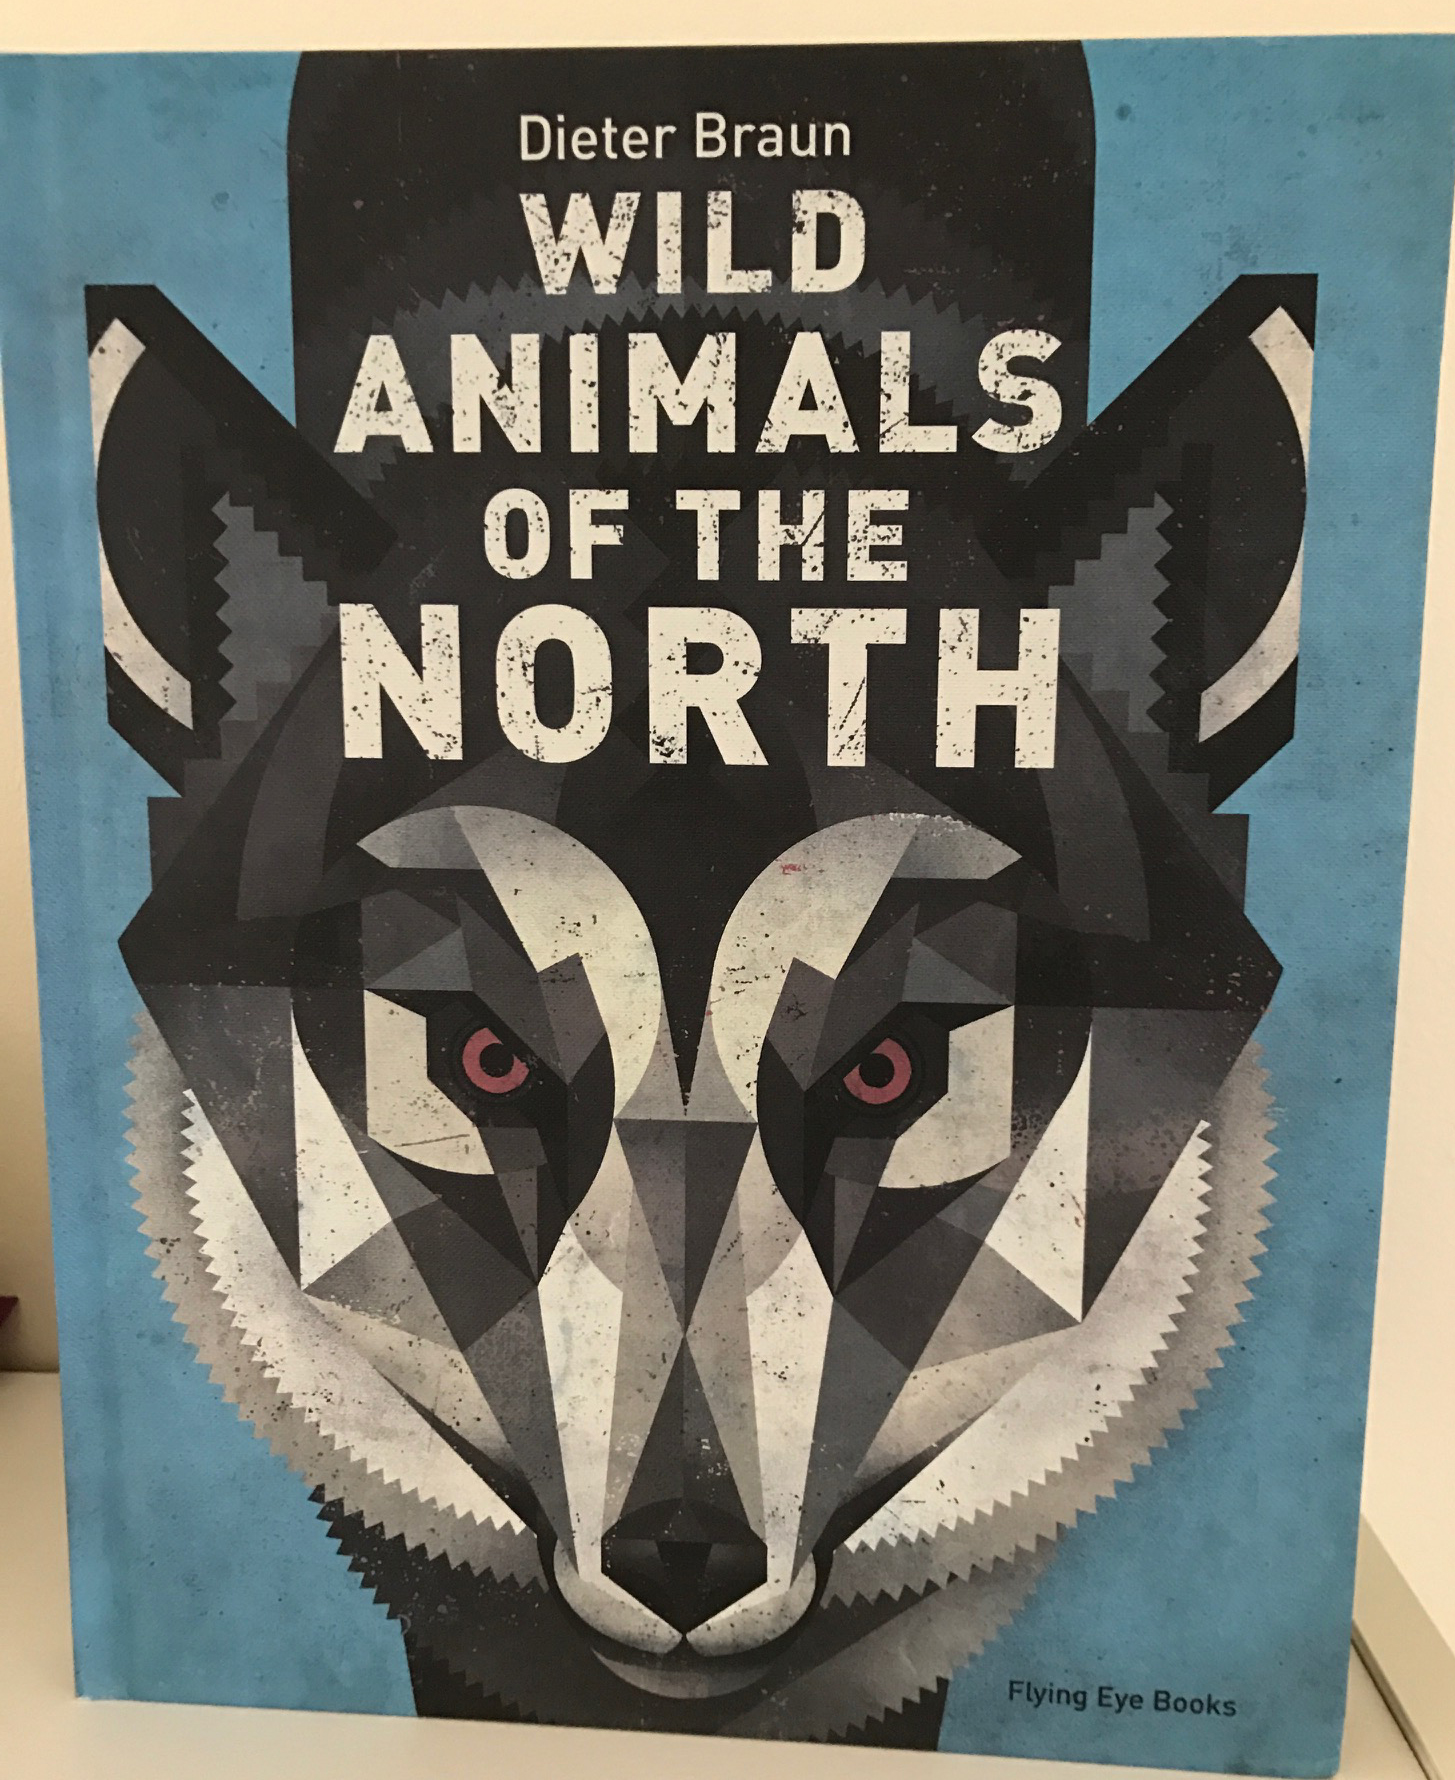 Wild Animals shortlisted for Greenaway!